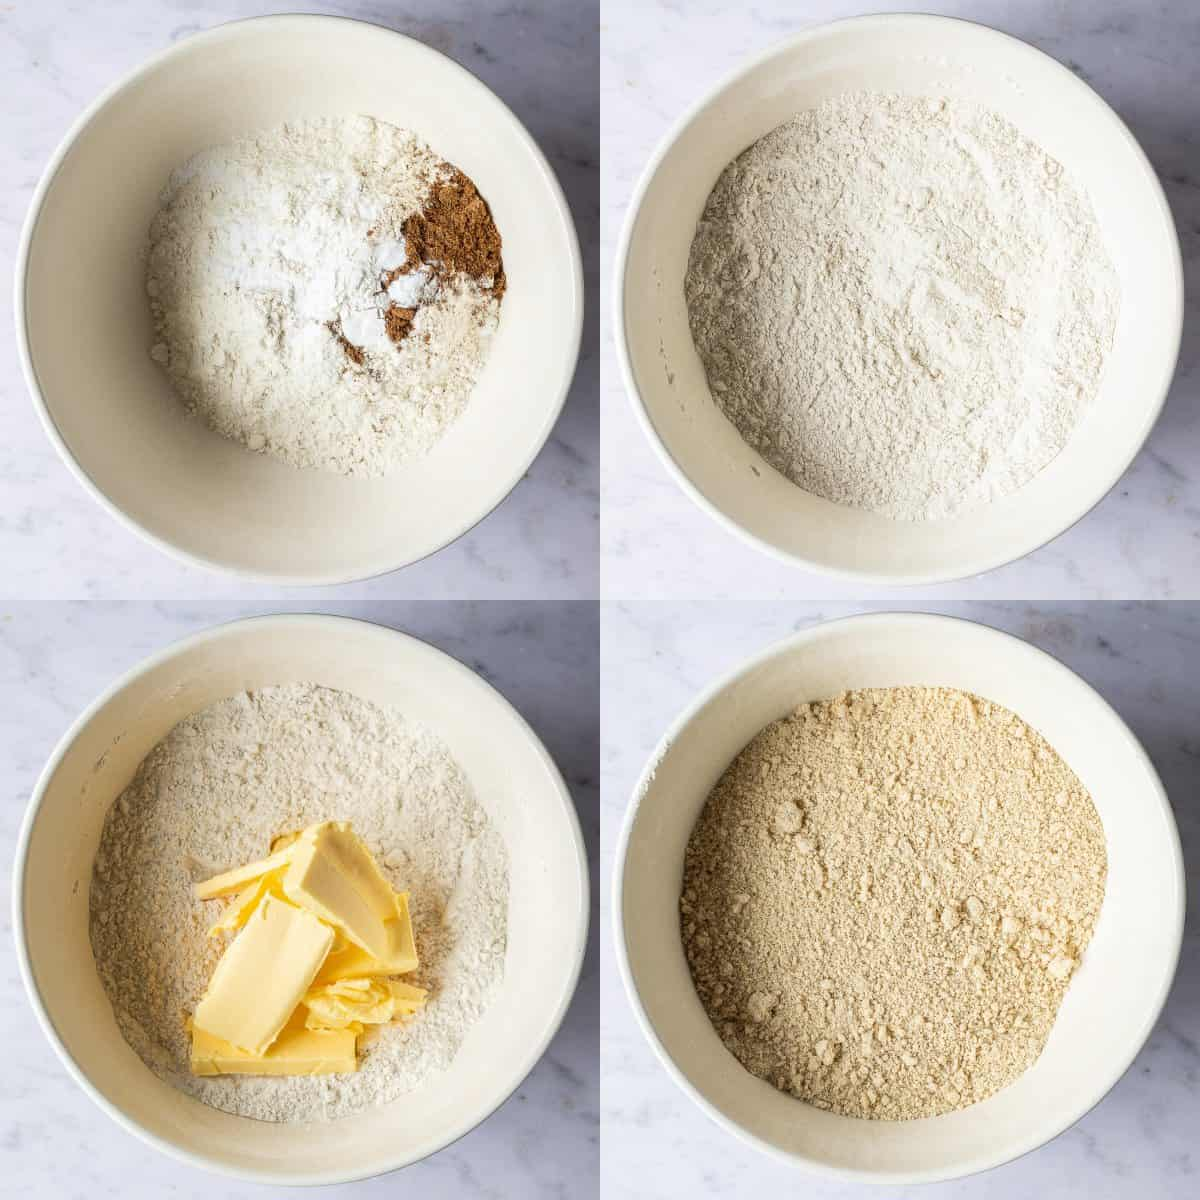 step 1 - mixing the dry ingredients and rubbing in the butter